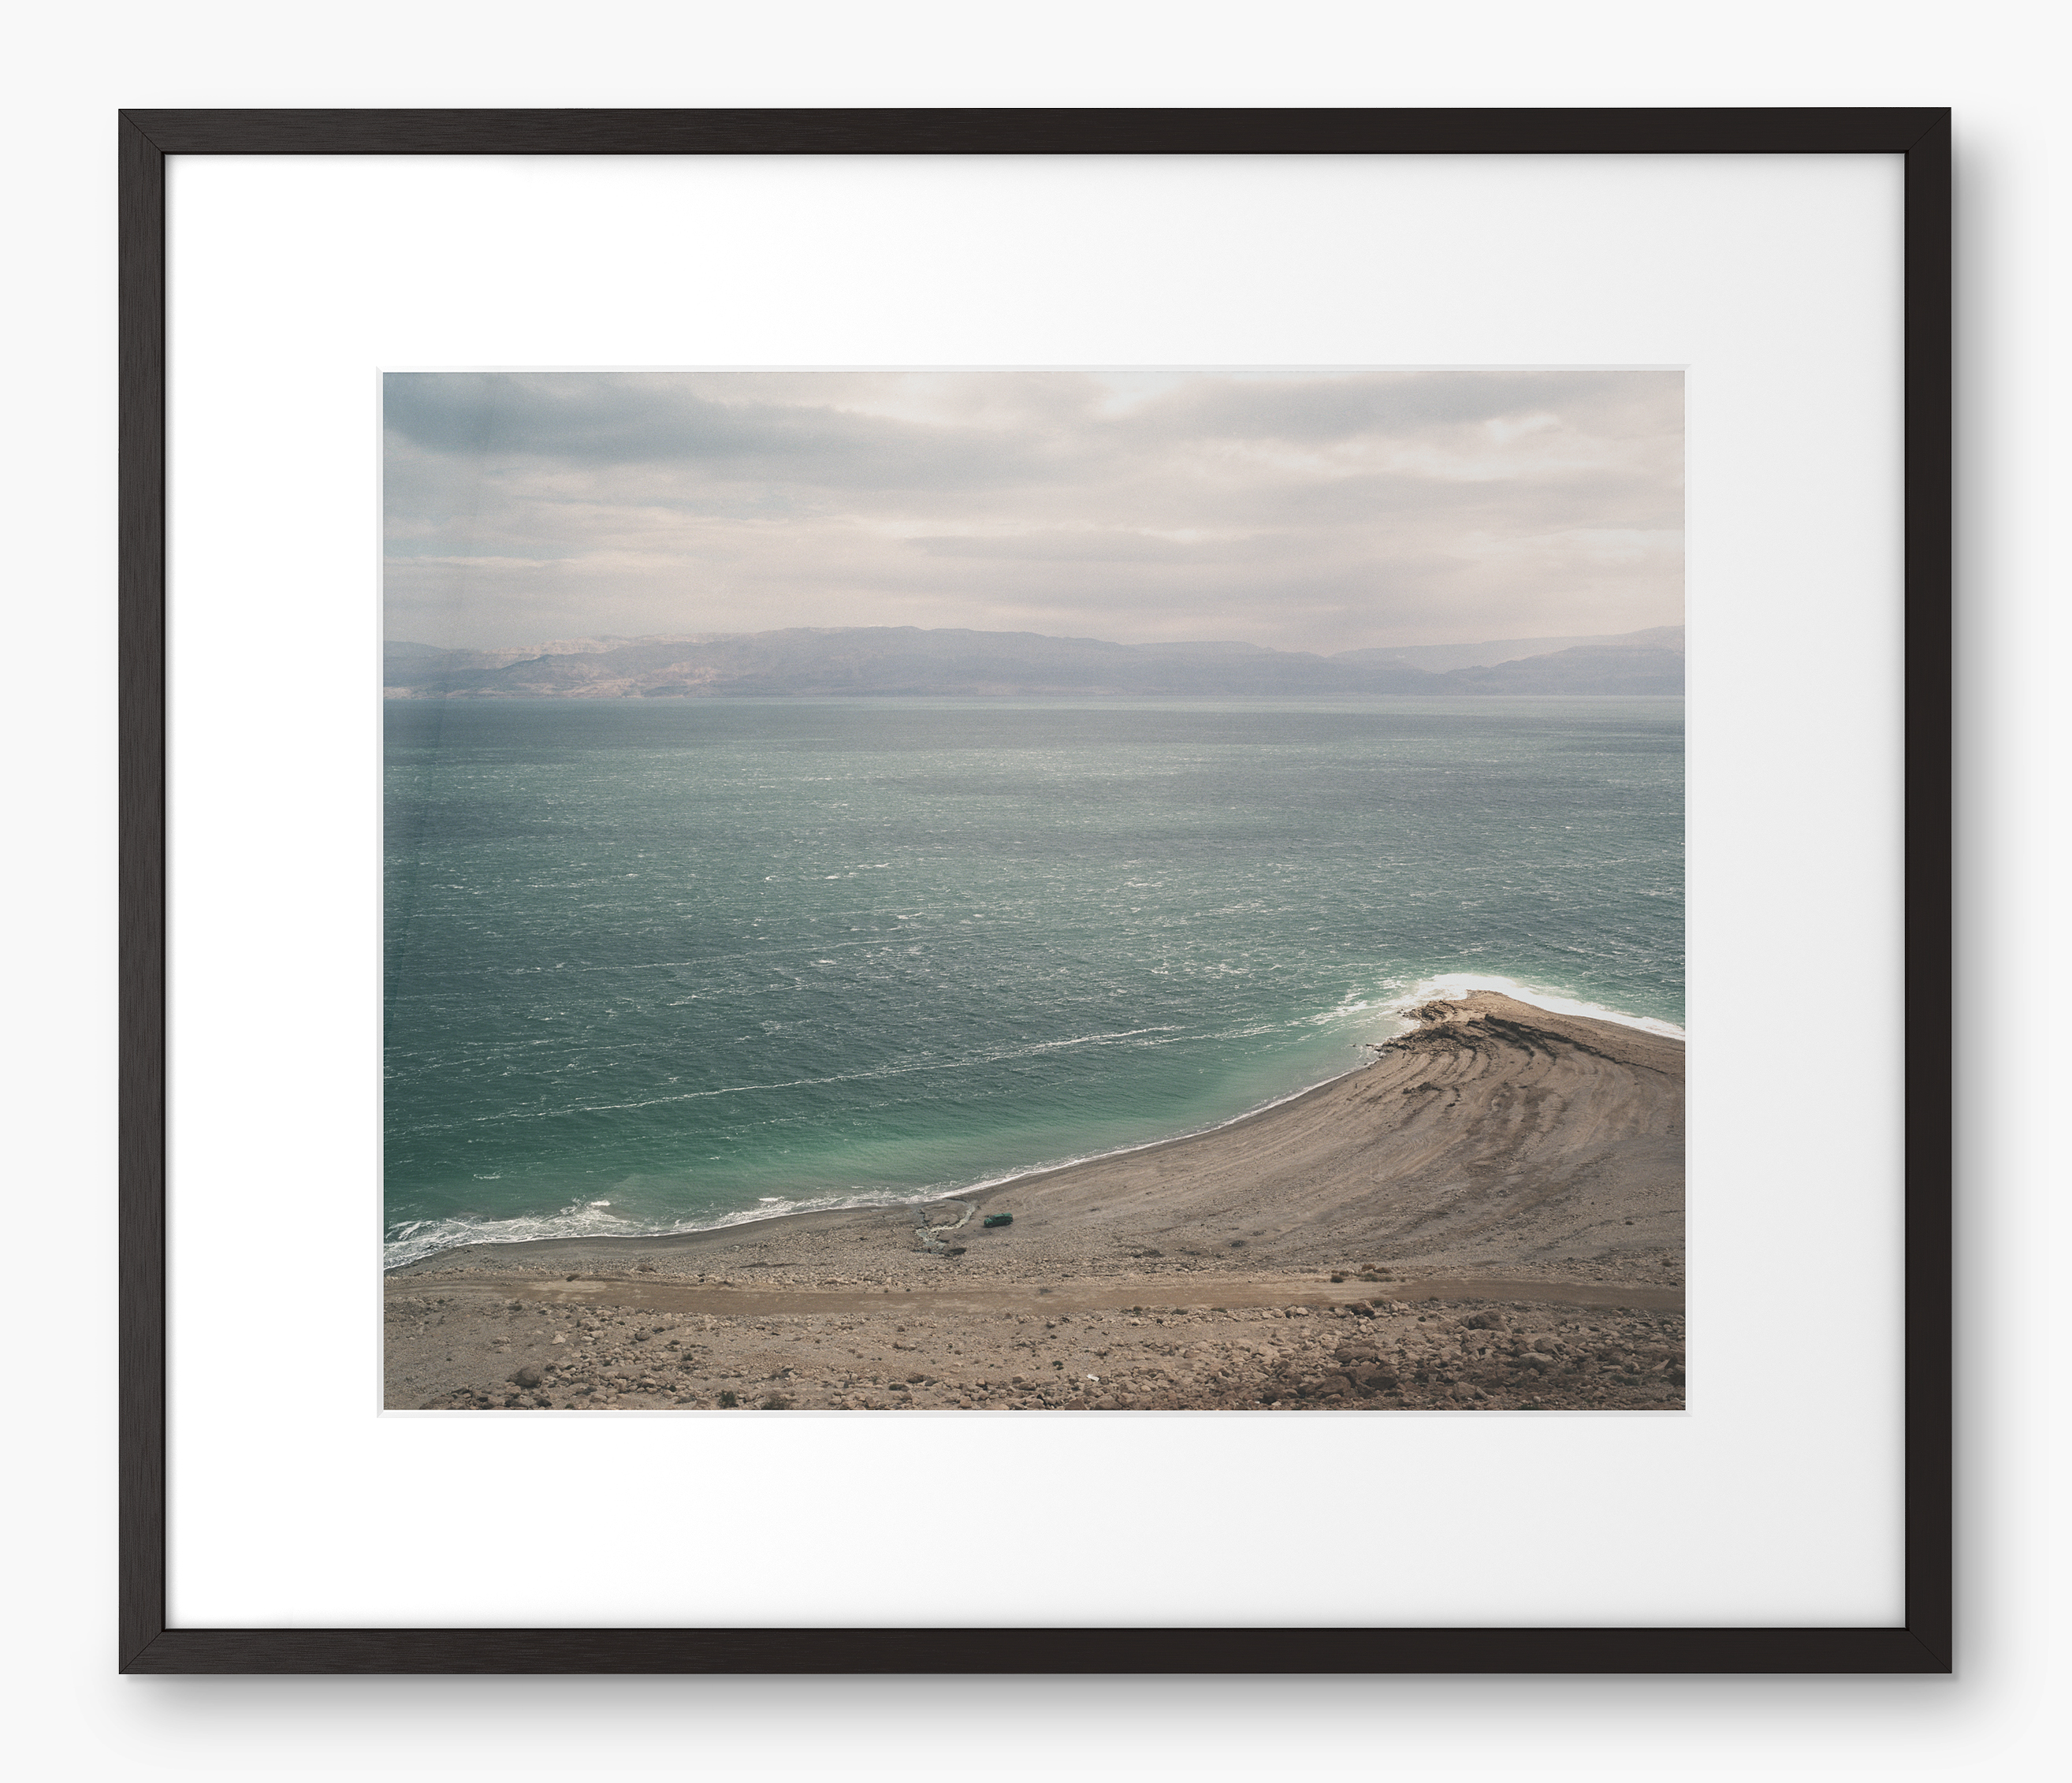 framed print with the white mat passe partout black frame type 20x28 mm print size 60 x 50 cm photography by bart silvia pogoda